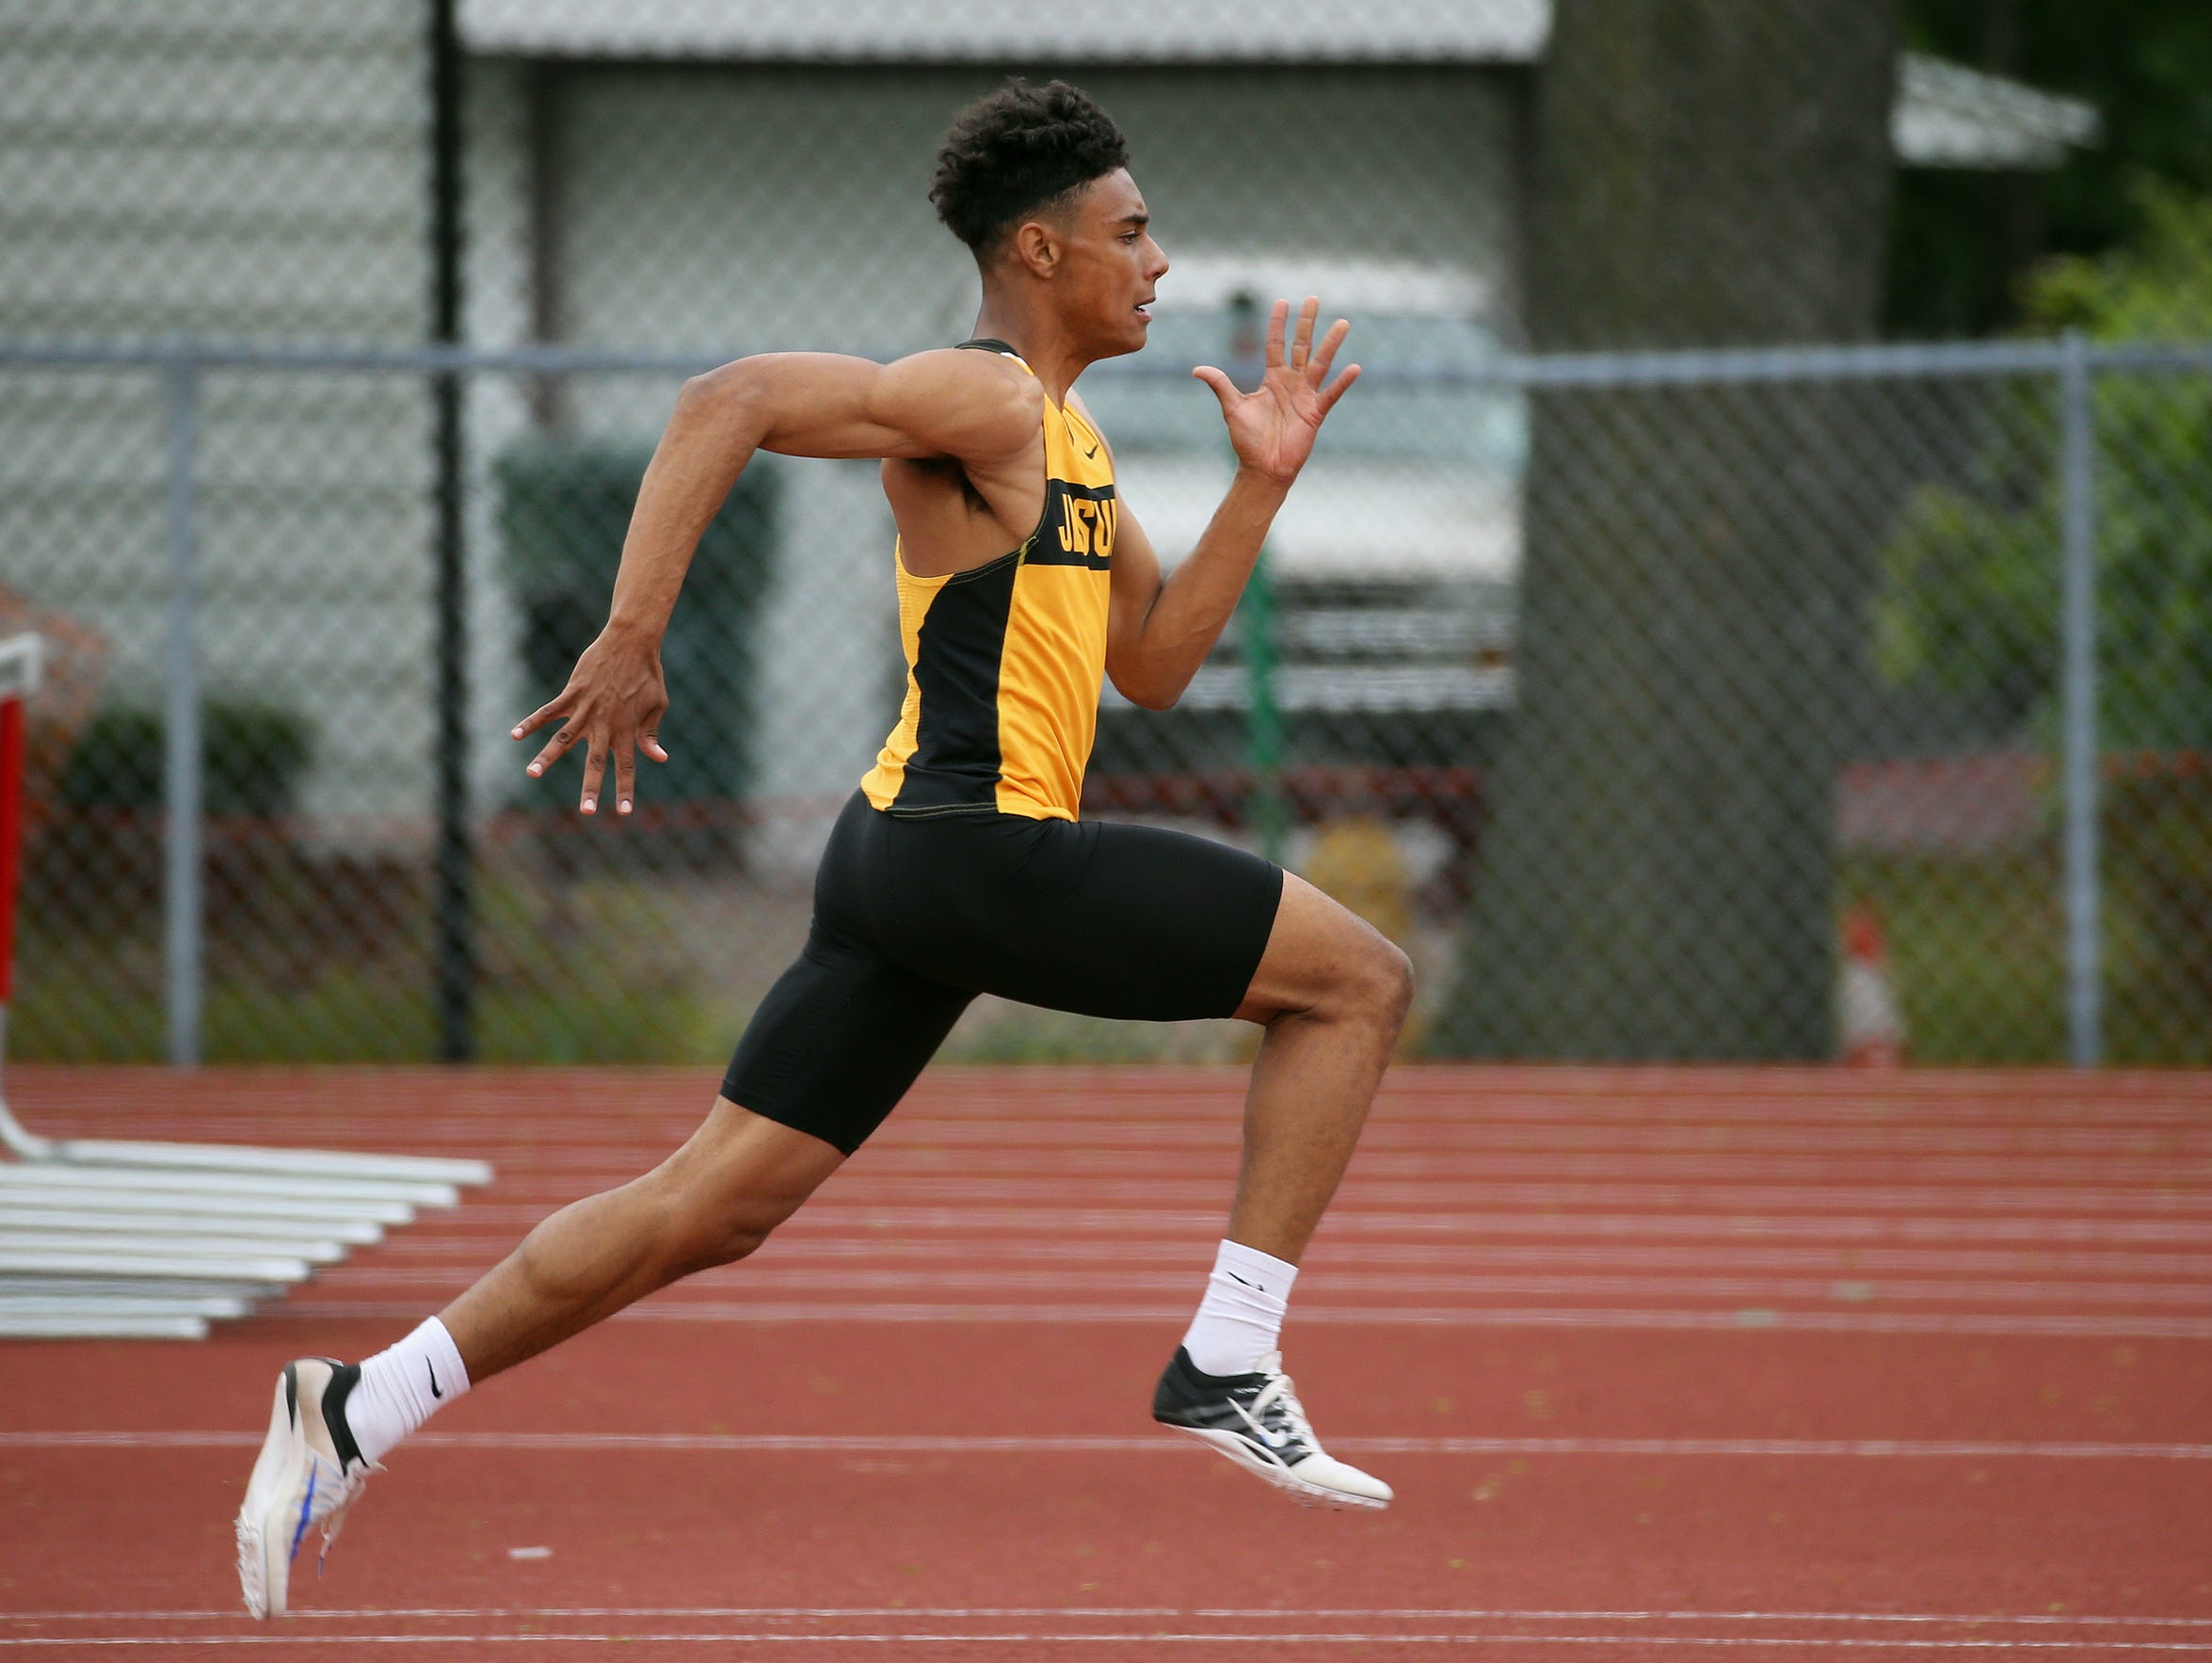 McQuaid's Noah Williams competes in the long jump event